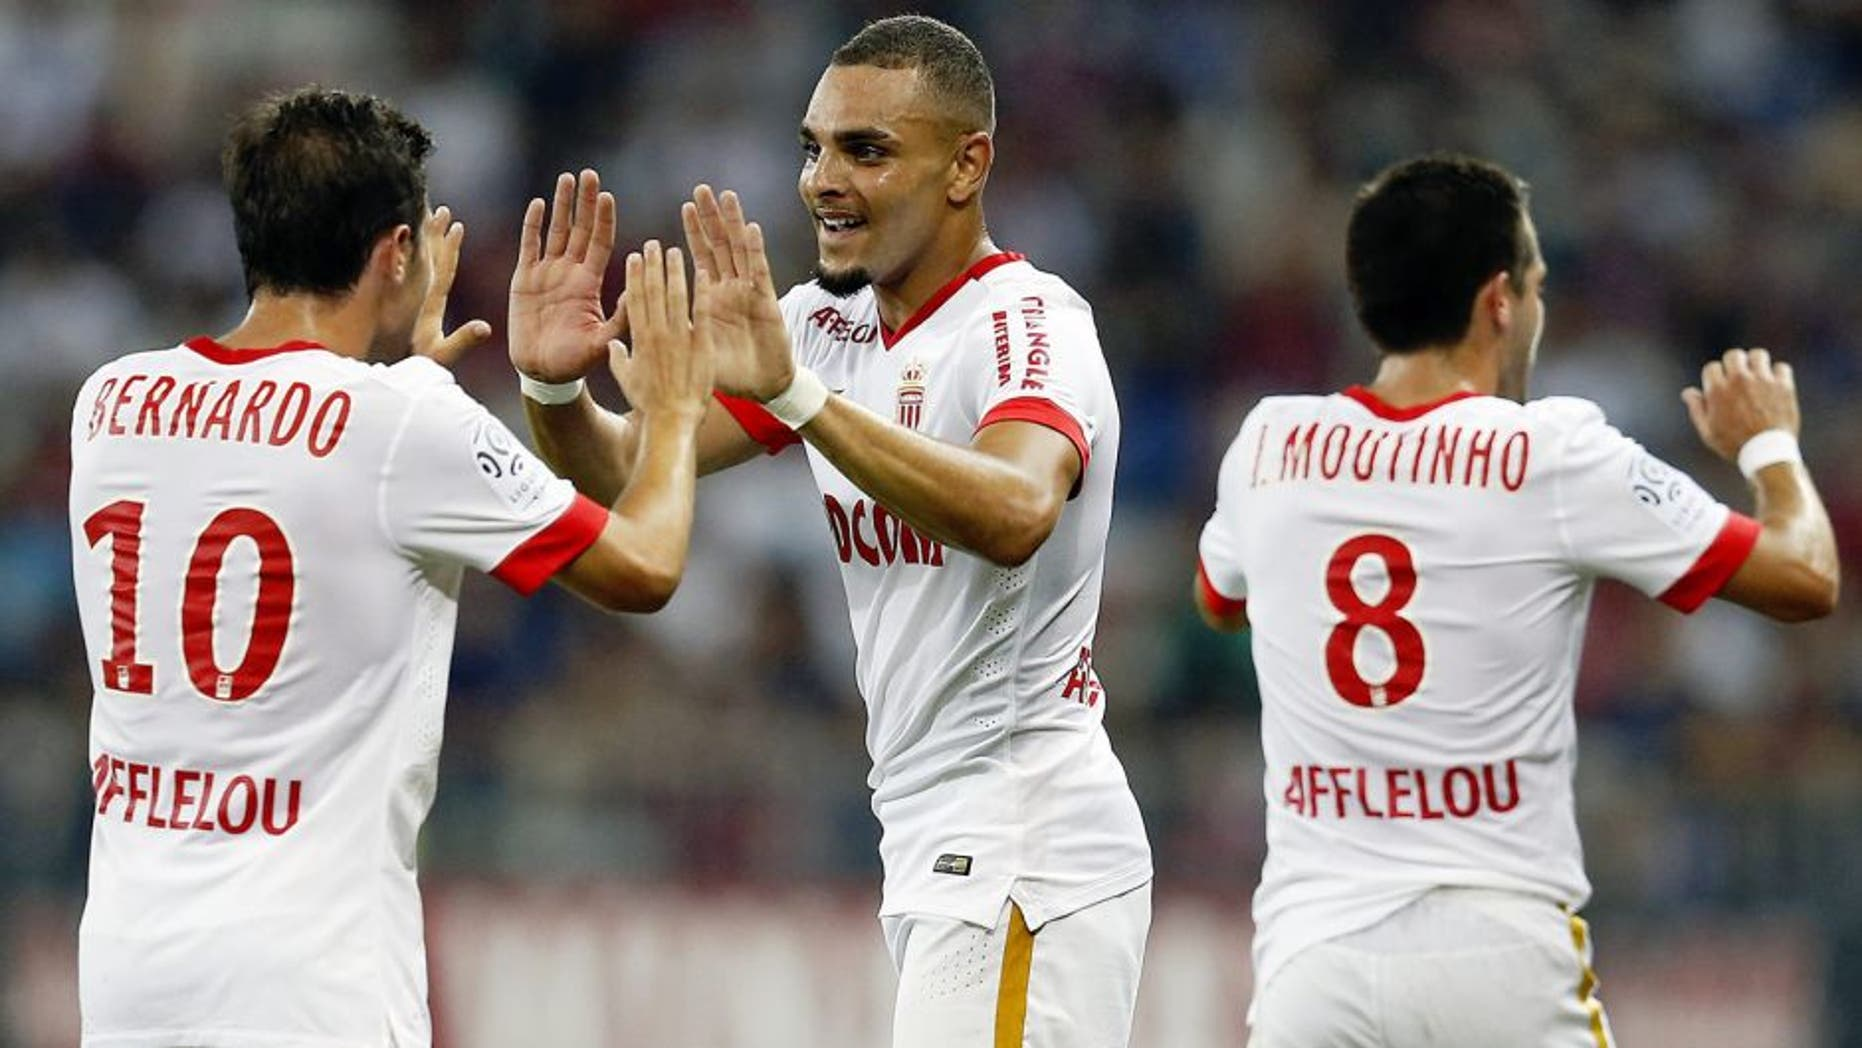 Monaco's French defender Layvin Kurzawa (C) celebrates with Portuguese midfielders Bernardo Silva (L) and Joao Moutinho after scoring his team's second goal during the French L1 football match between Nice and Monaco at the Allianz Riviera stadium in Nice, southeastern France, on August 8, 2015. AFP PHOTO / VALERY HACHE (Photo credit should read VALERY HACHE/AFP/Getty Images)